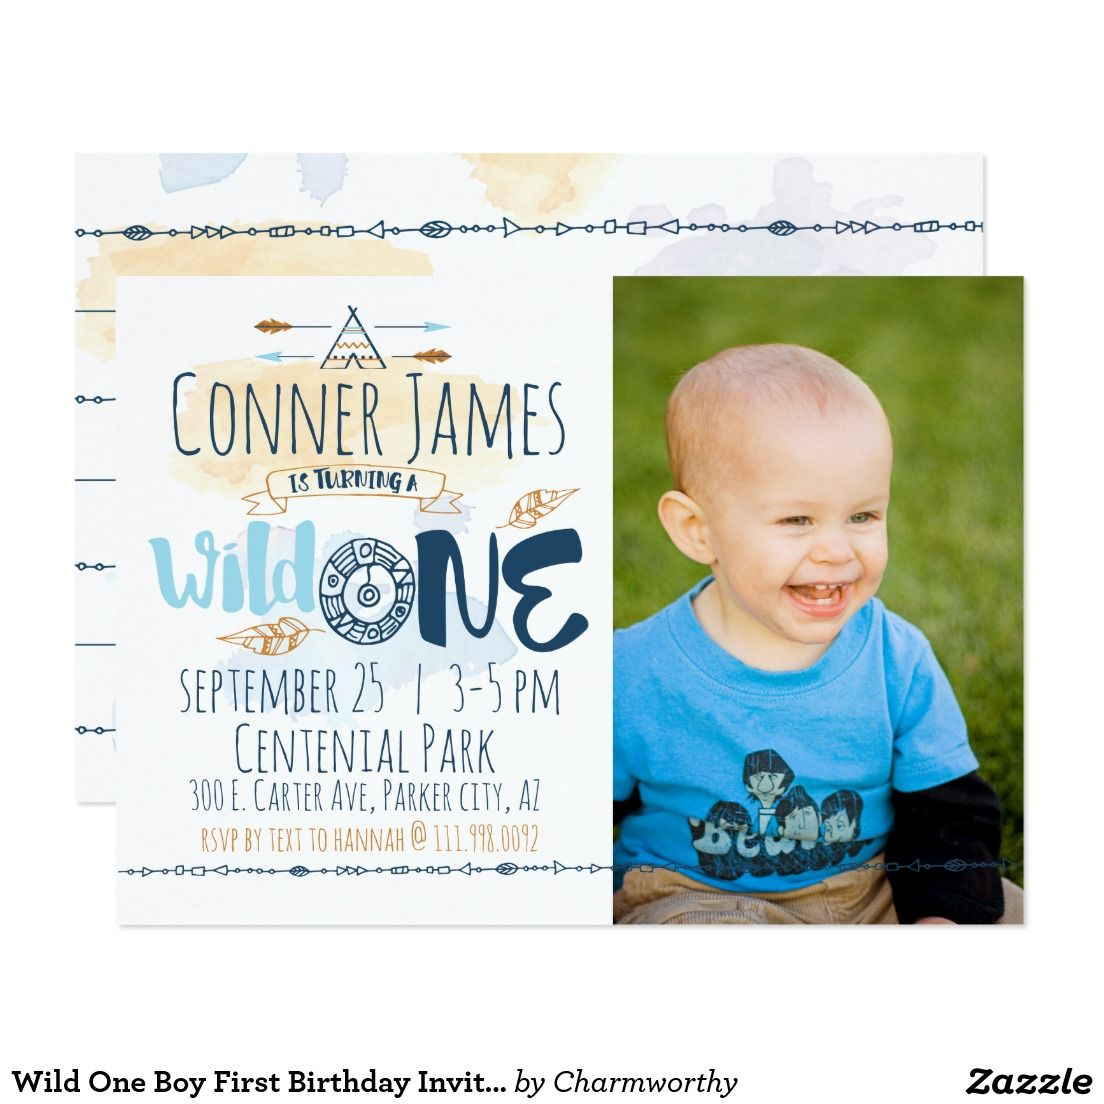 Wild One Boy First Birthday Invitation | Little Ones | Pinterest ...